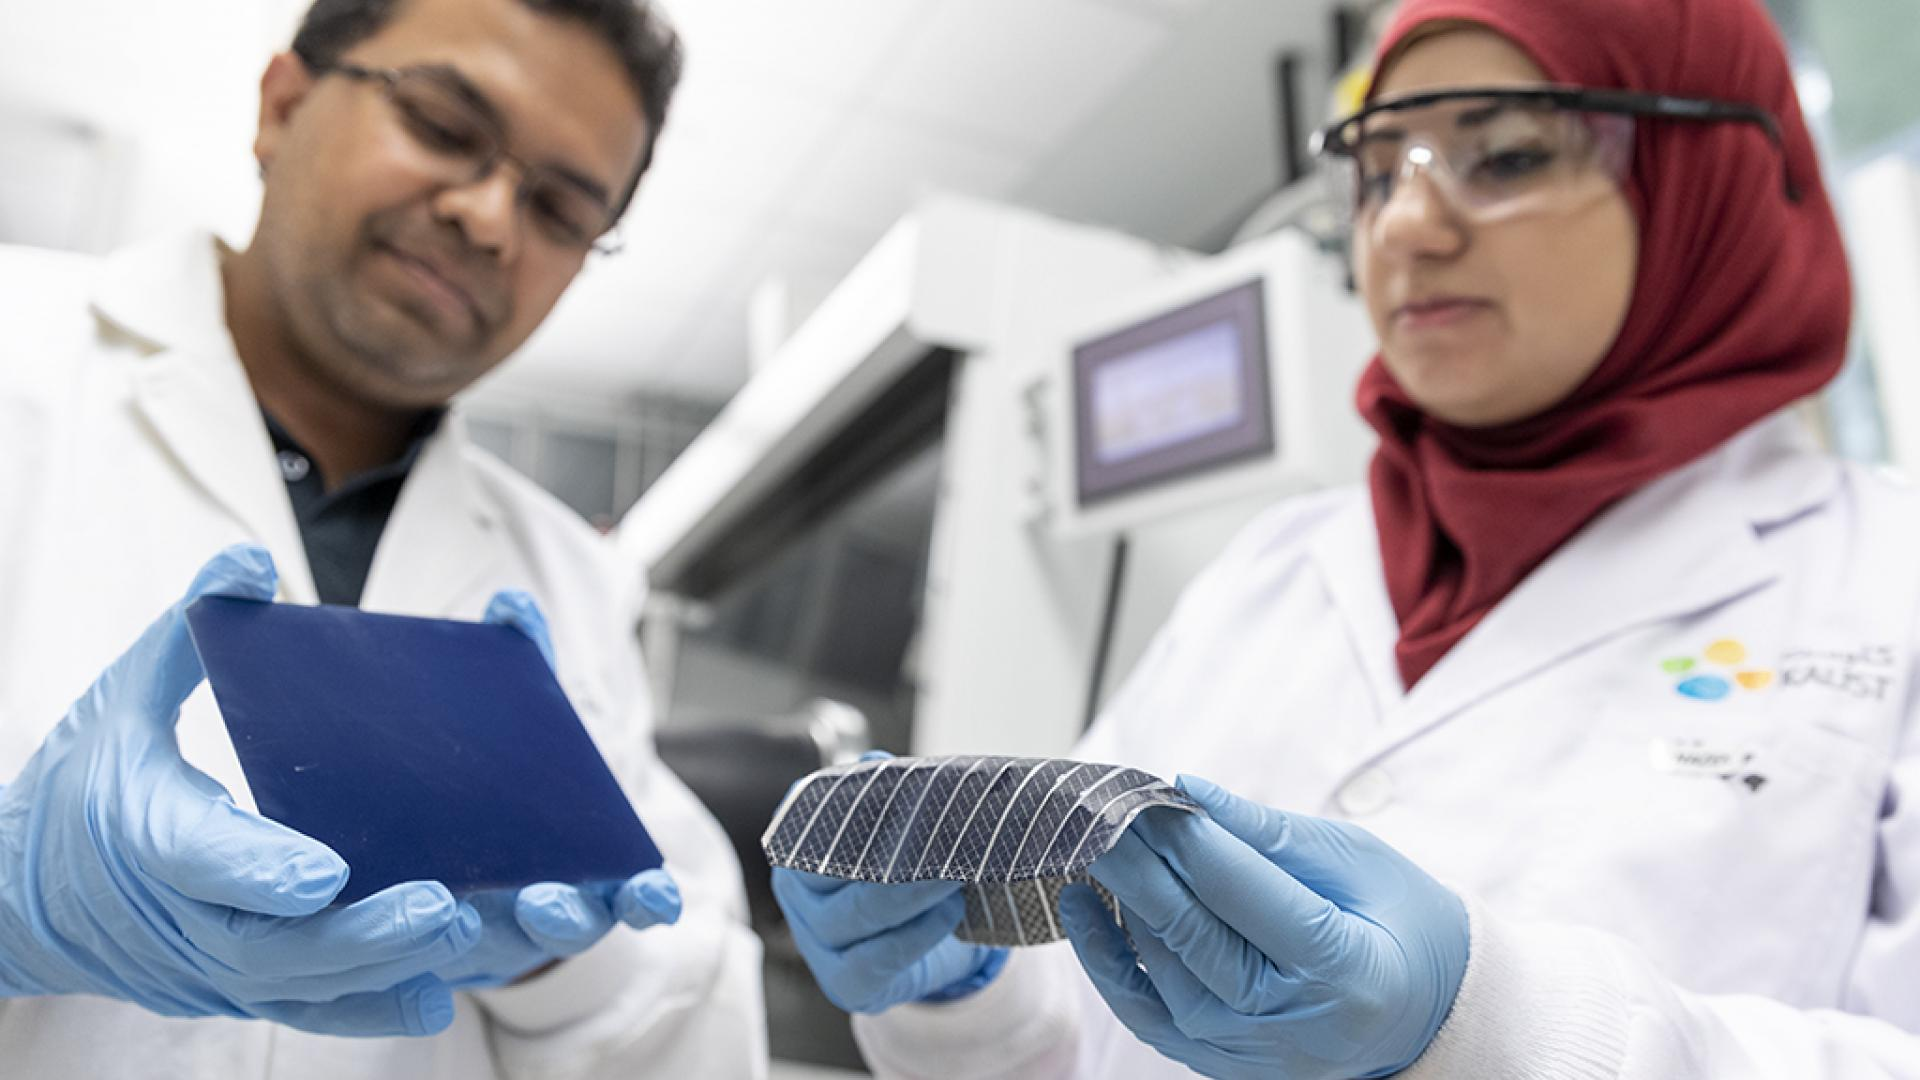 KAUST CEMSE EE FABLAB MMH LAB Muhammad Mustafa Hussain Nazek El Atab Compare The Flexibility Of Their Solar Cell